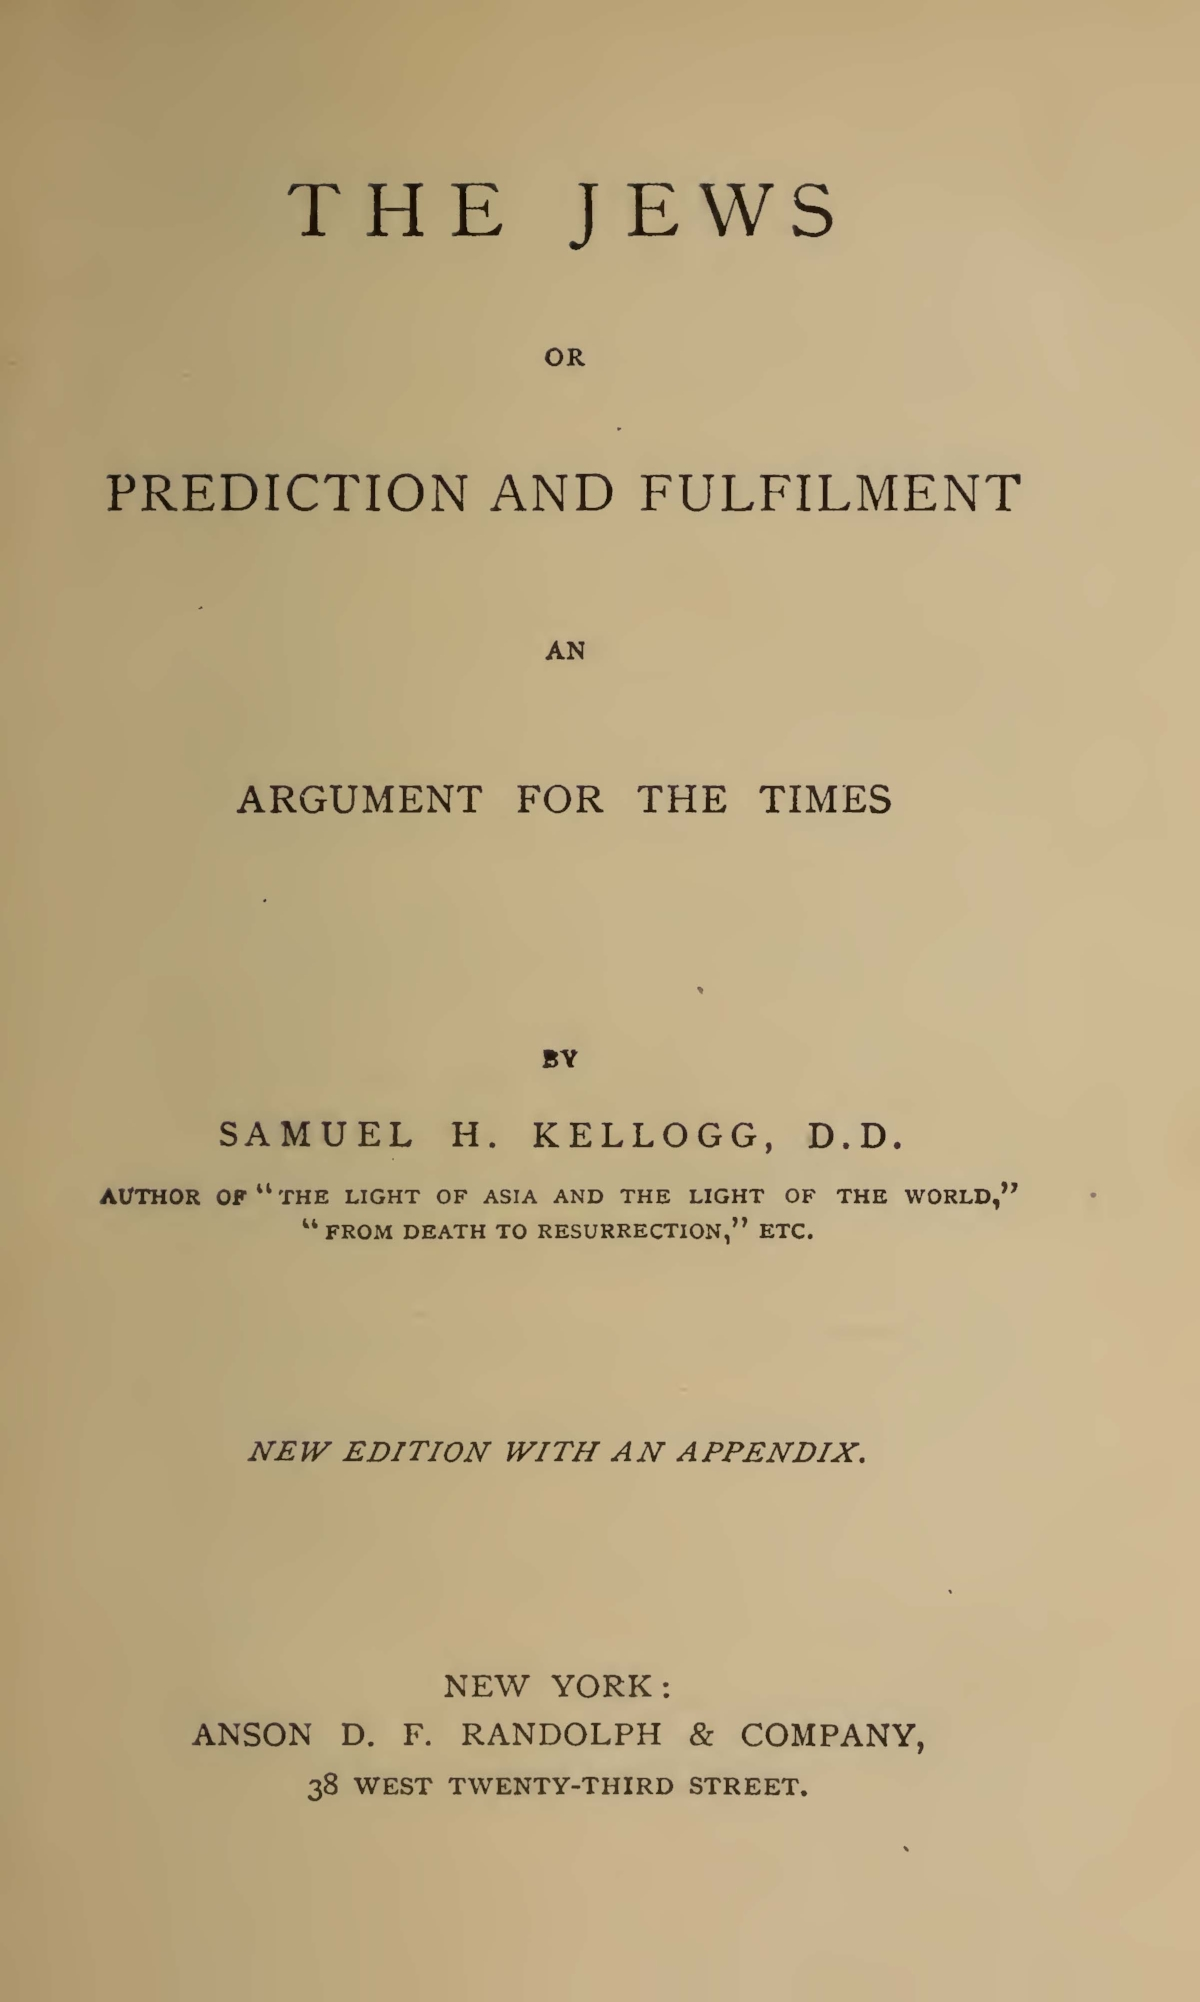 Kellogg, Samuel Henry, The Jews or Prediction and Fulfilment Title Page.jpg